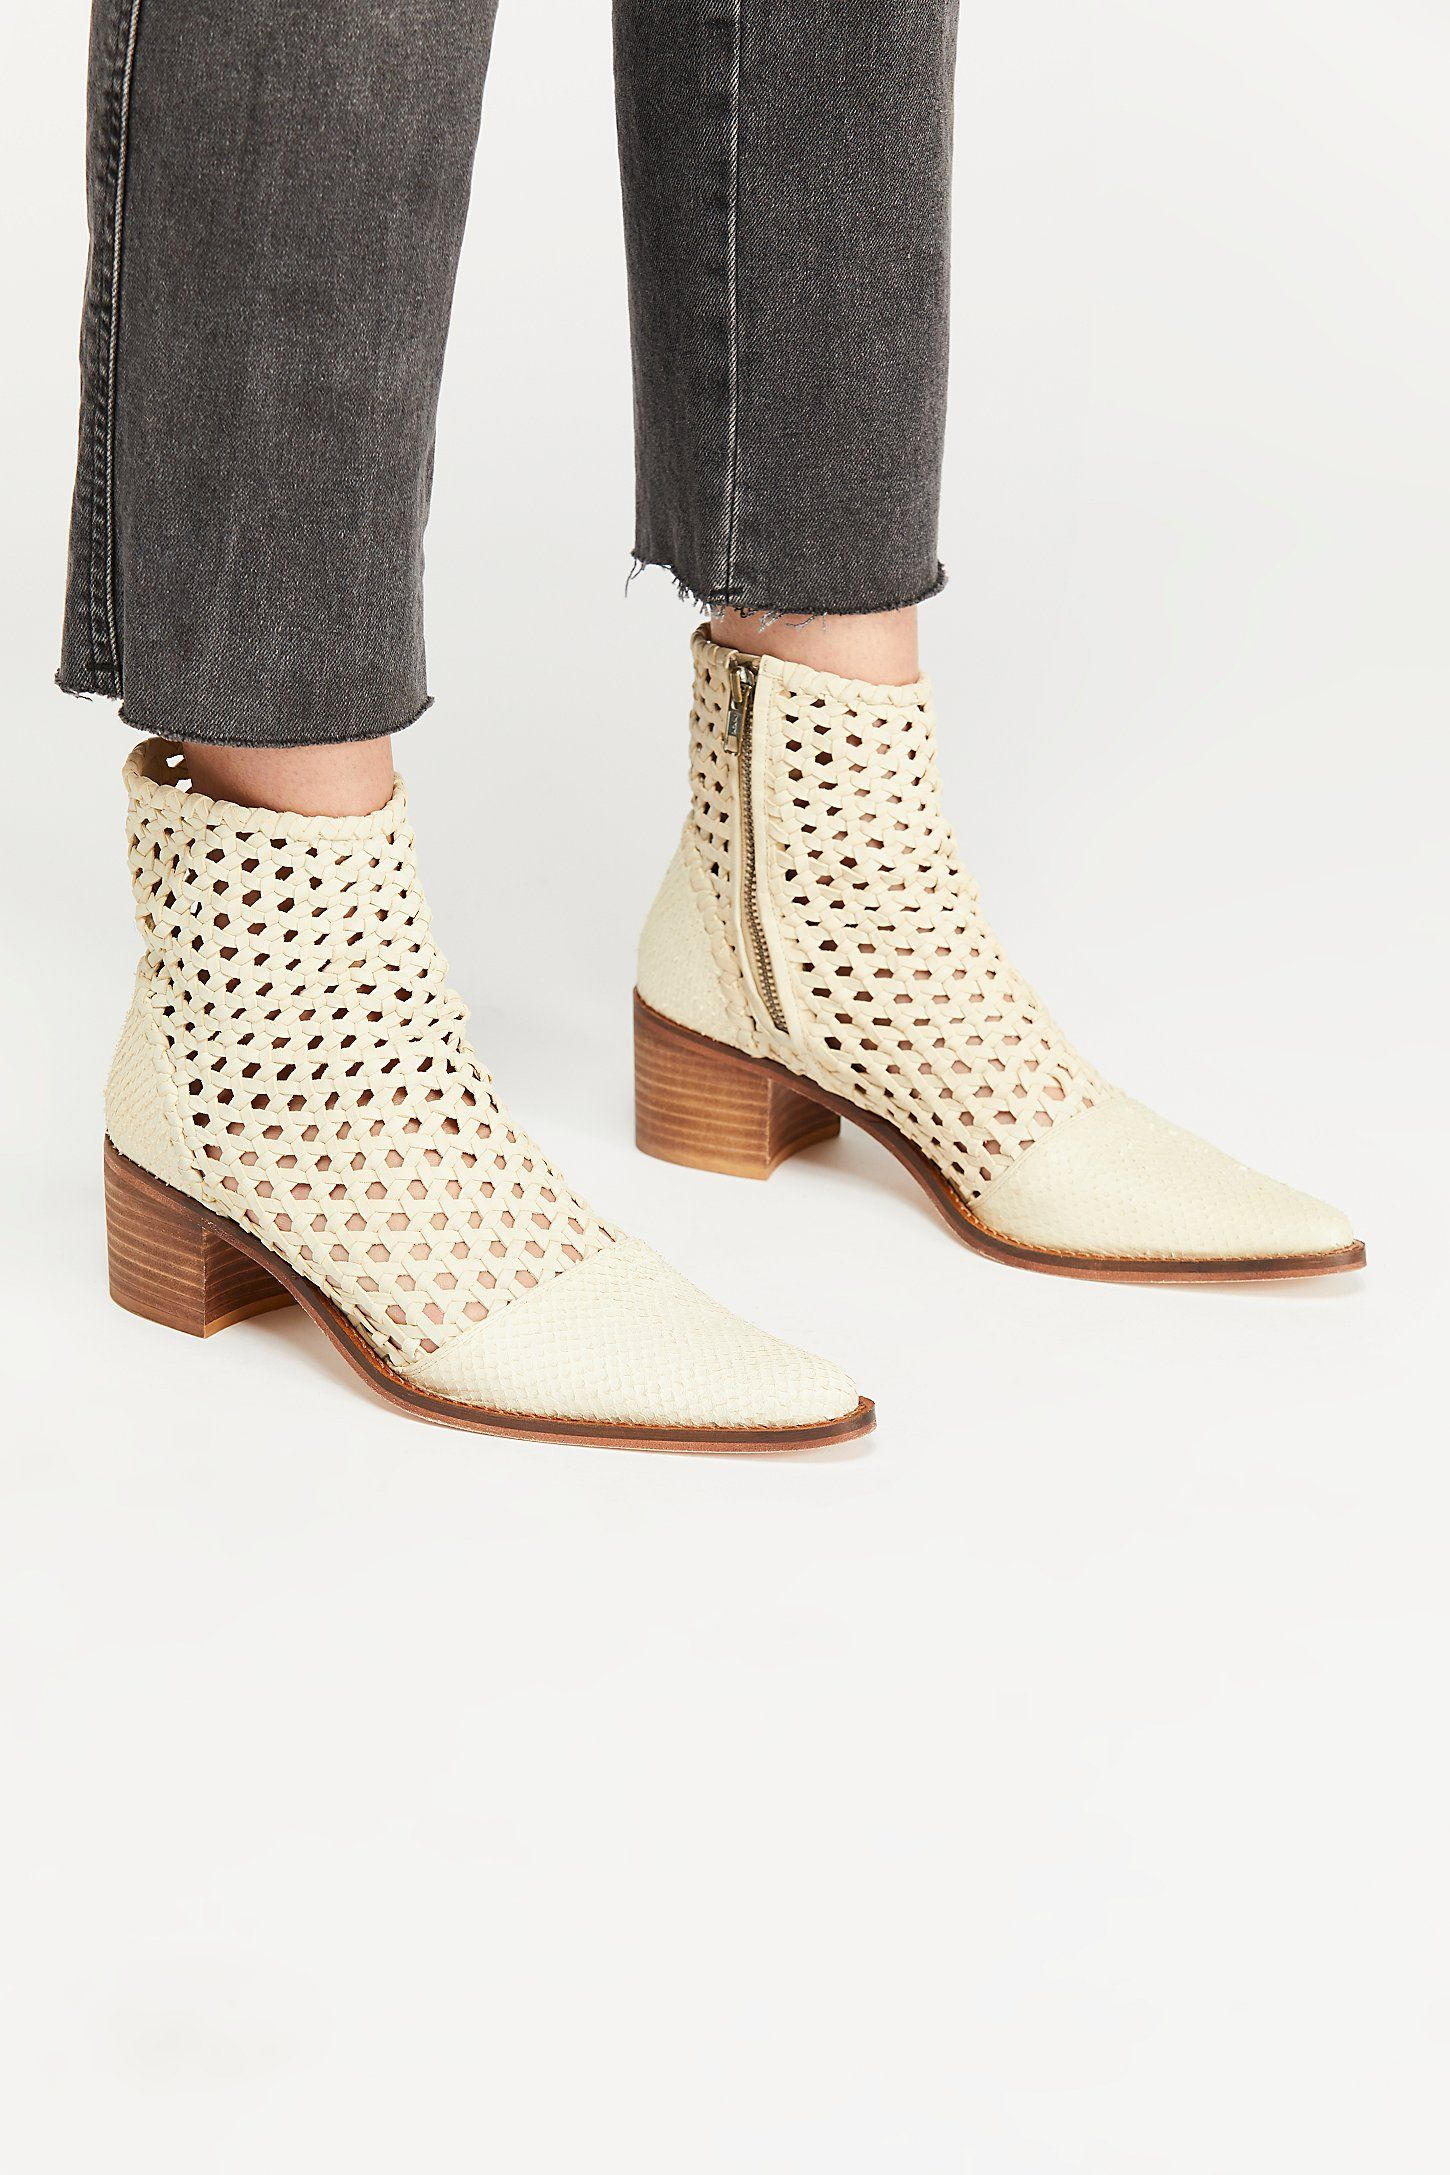 688aef0ad In The Loop Woven Boot | Sweet Shoes | Boots, Shoes, Shoe boots